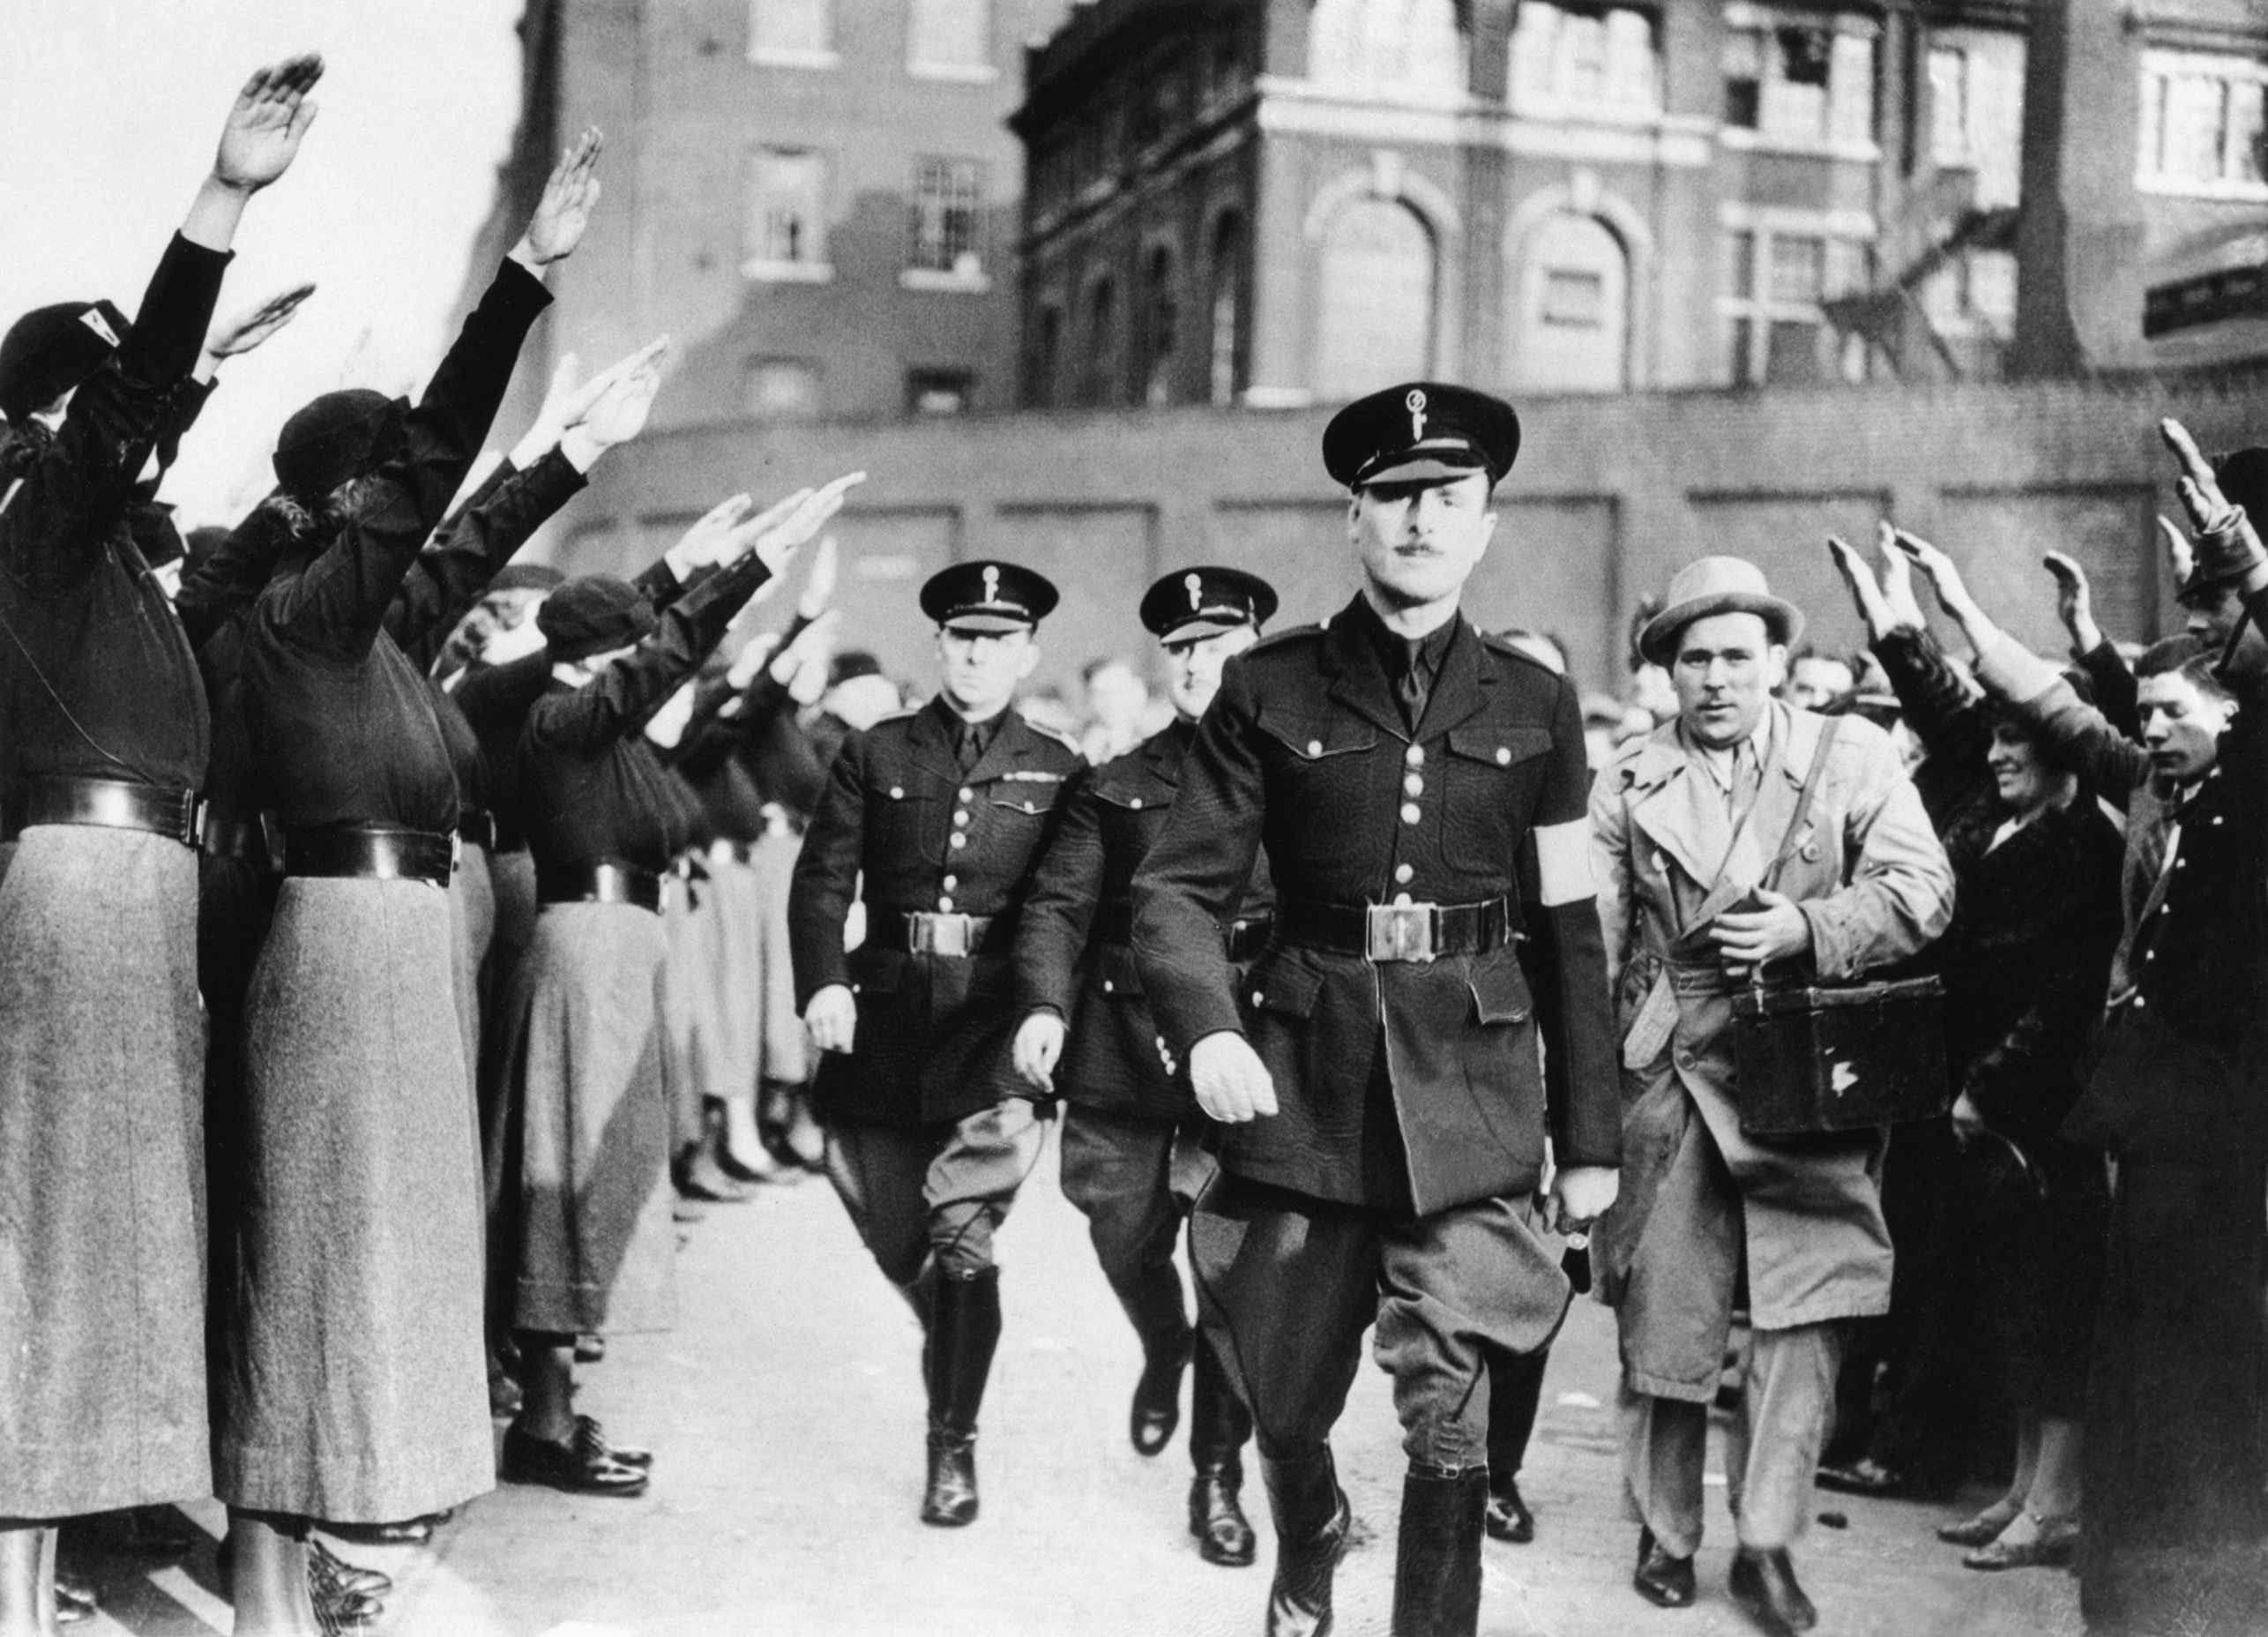 Oswald Mosley, leader of the British Union of Fascists